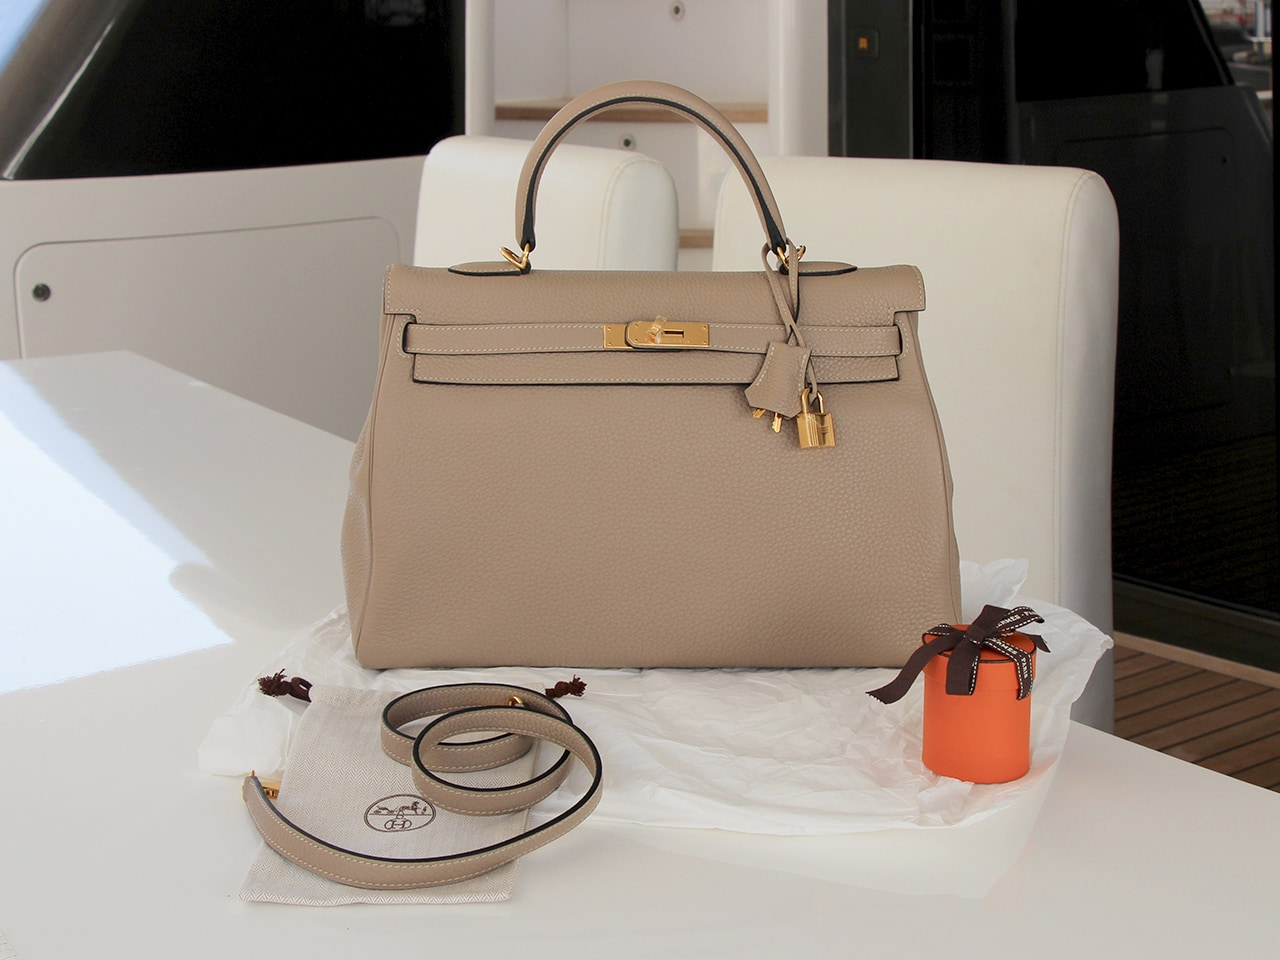 HERMES-KELLY-grey-3